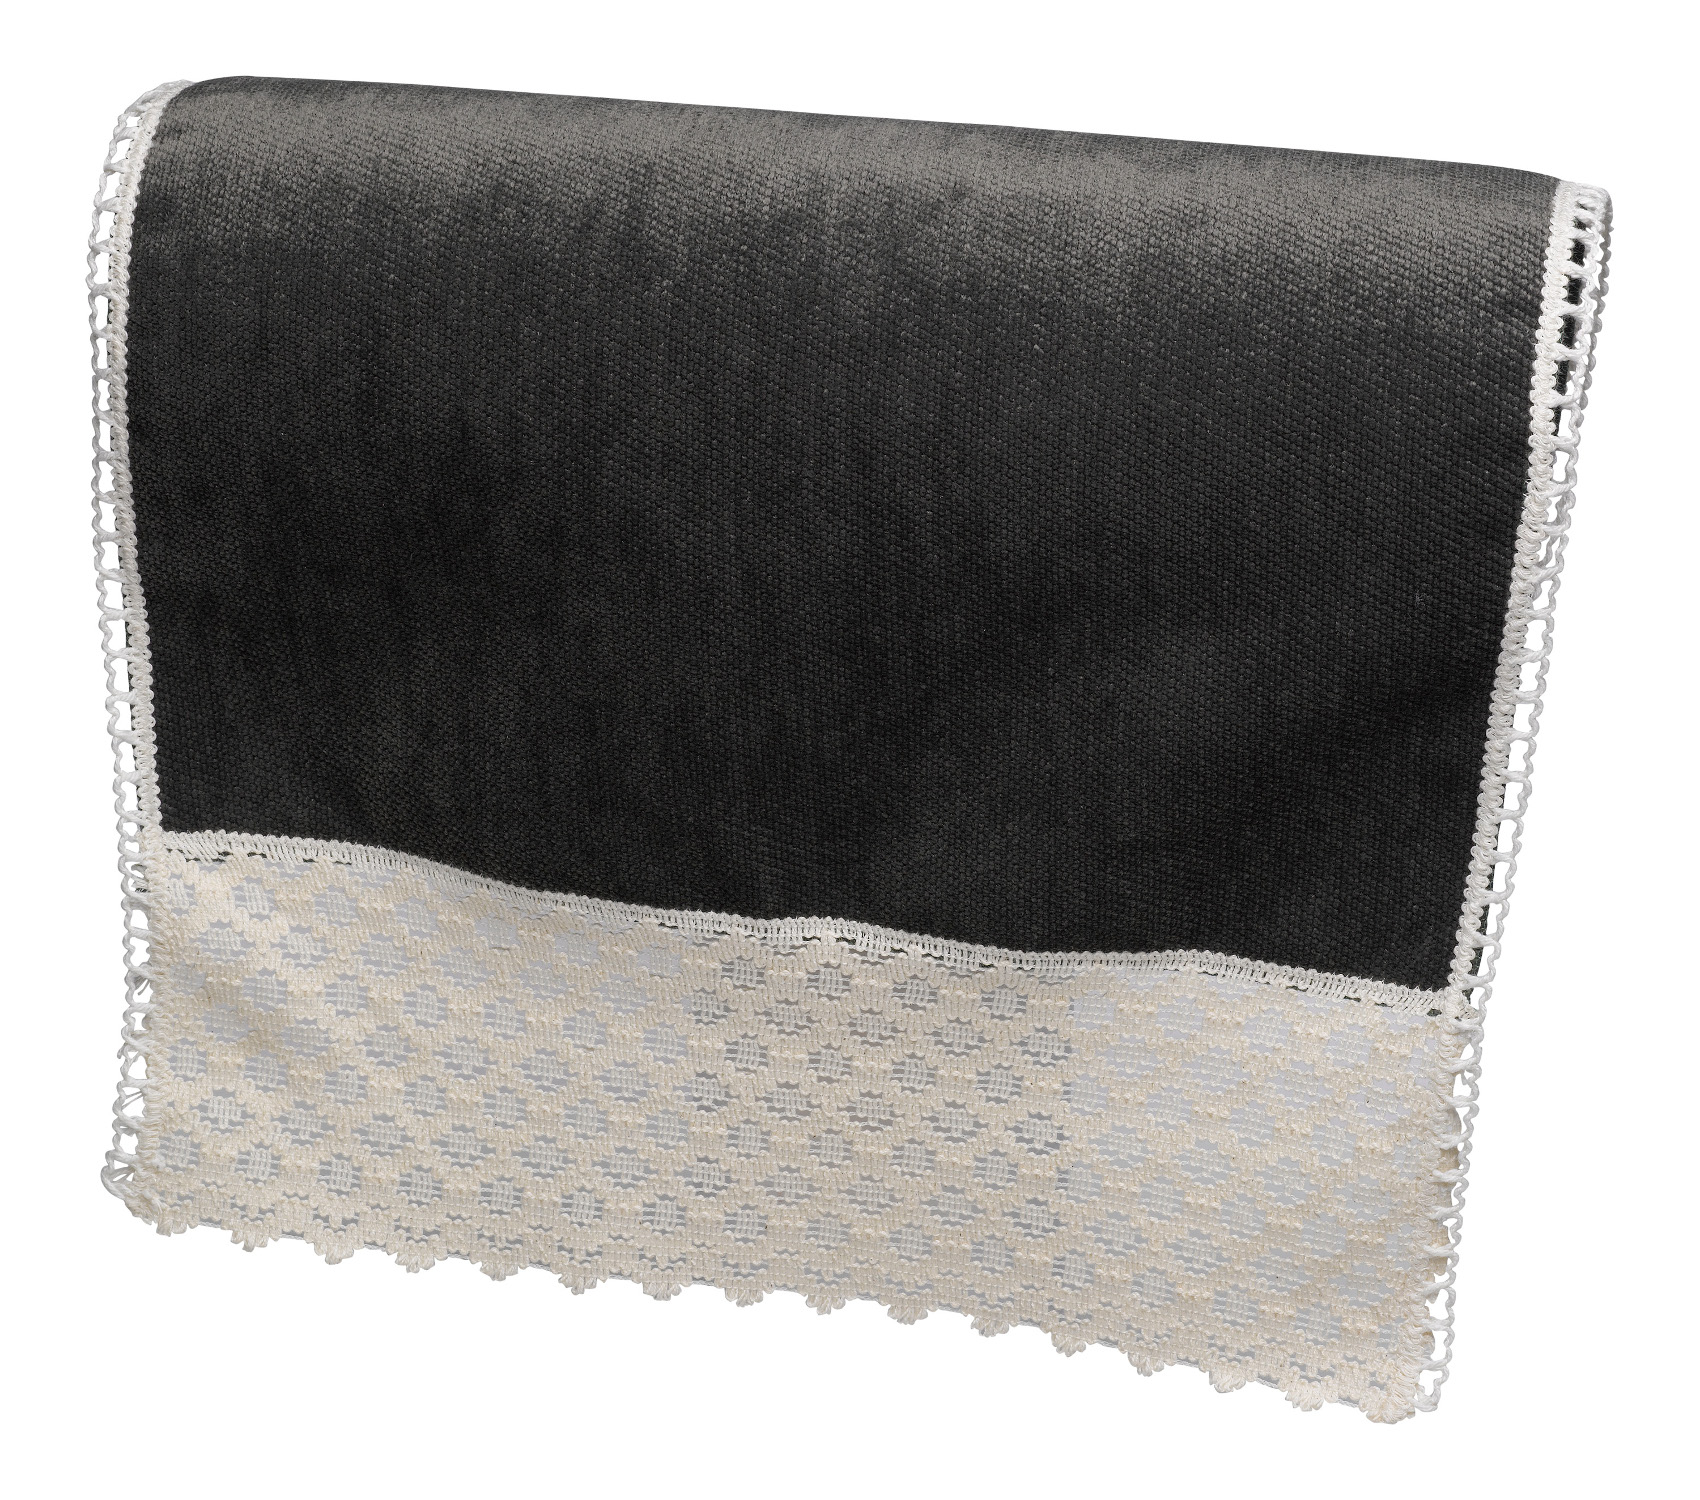 leather chair covers ebay human touch massage replacement parts chenille lace trim antimacassar chairback cotton sofa